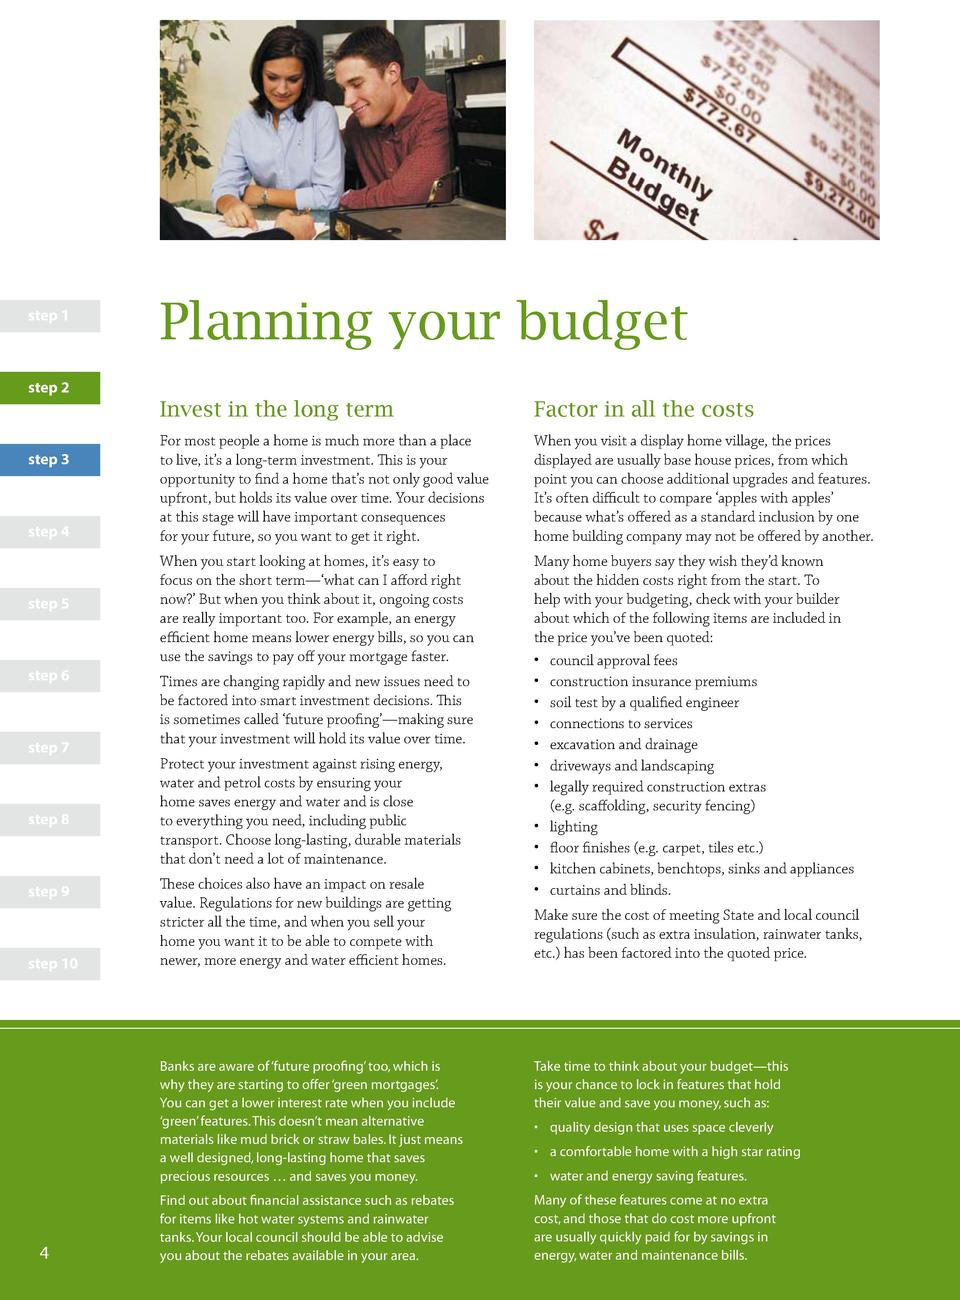 step 1  Planning your budget  step 2  Invest in the long term step 3  step 4  step 5  step 6  step 7  step 8  step 9  step...